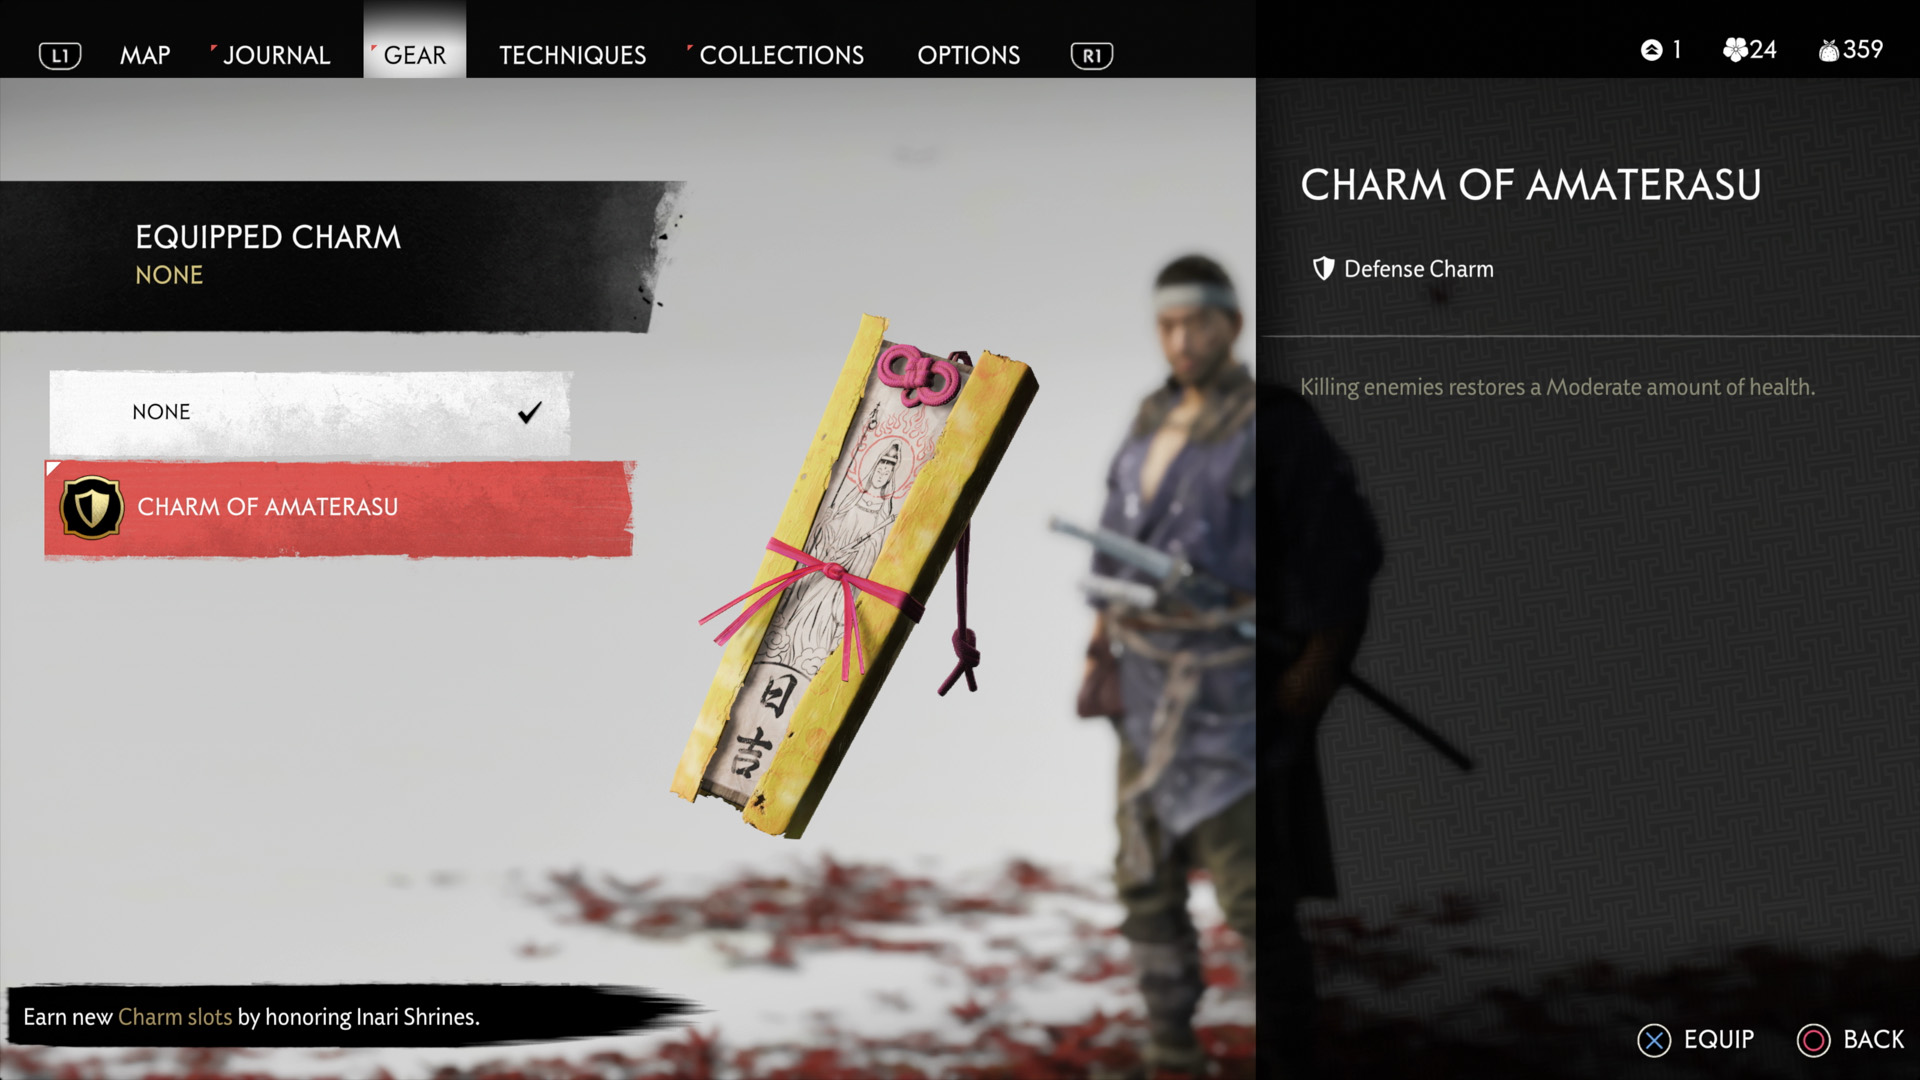 How to get new charms - ghost of tsushima